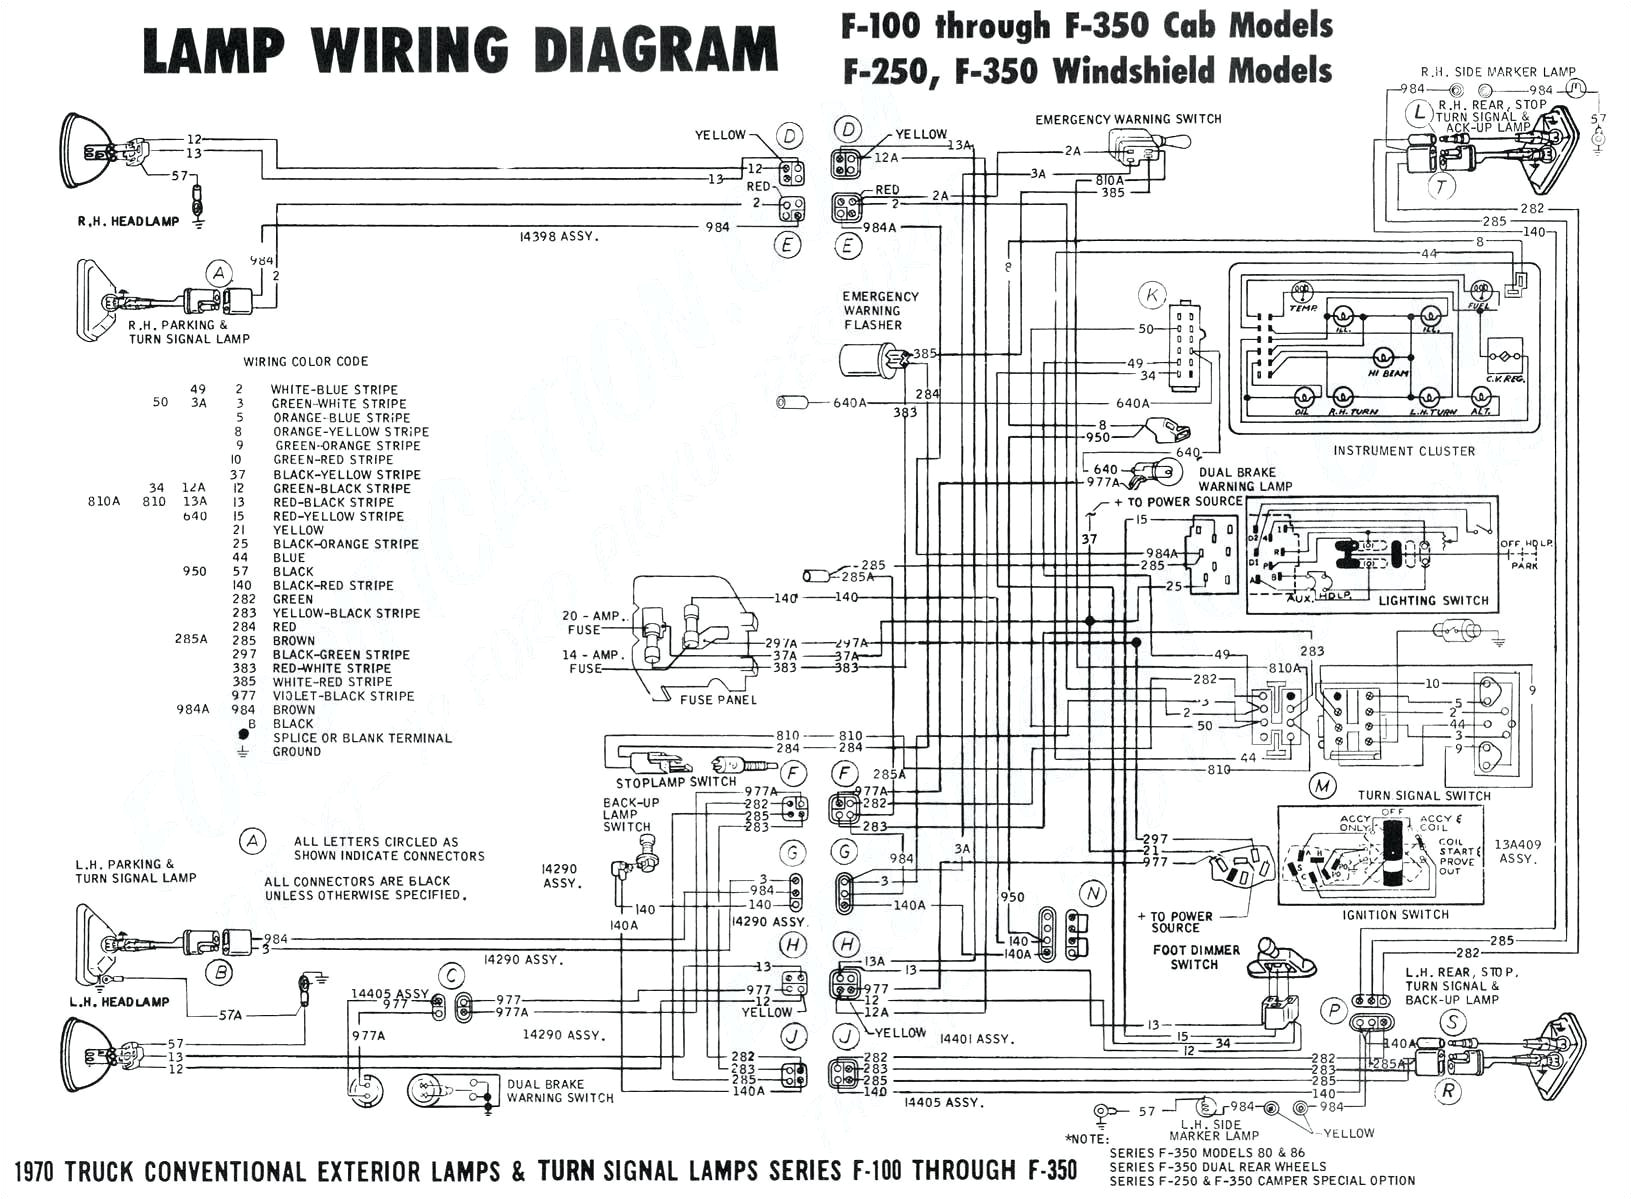 cb900f wiring diagram wiring diagram centre cb900f switch wiring diagram wiring diagrams konsult